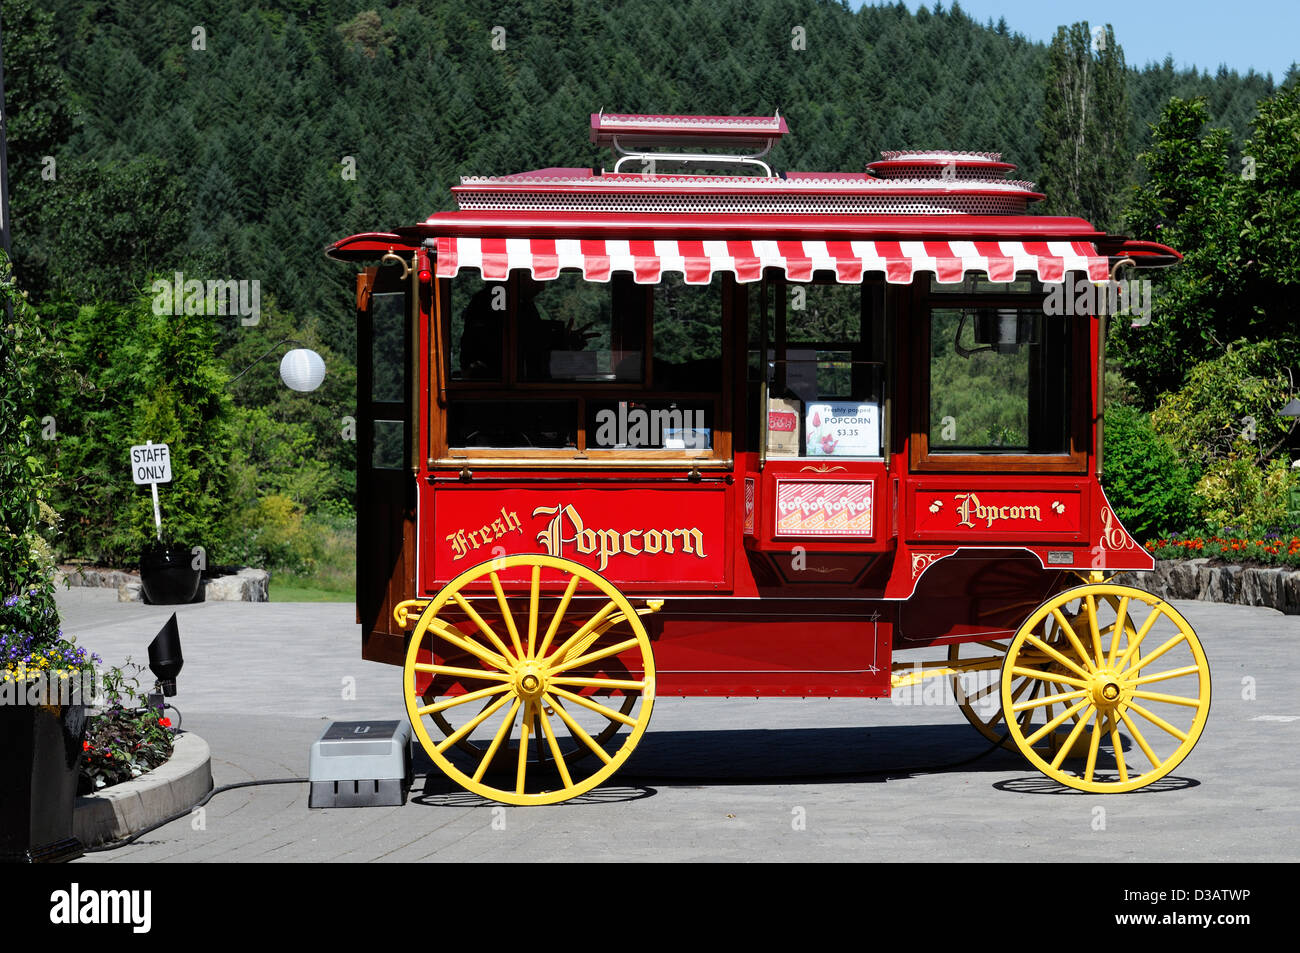 wild west wagon style styled popcorn convenience fast food